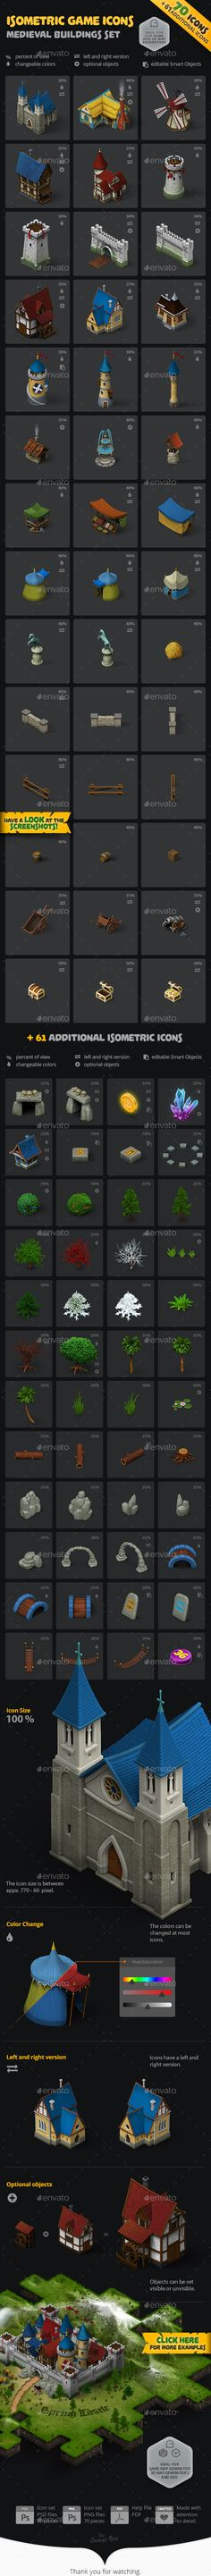 Isometric Game Icons - Medieval Buildings Set he icon set contains over 70 high quality, isometric icons. By combining and changing the color of single elements nearly endless variations are possible (take a look at the screenshots)! In addition there are also 61 bonus icons! The set is optimized for our GAME MAP GENERATOR but of course it works fine with the ISOMETRIC 3D MAP GENERATOR -2 and the 3D MAP GENERATOR – GEO, too.